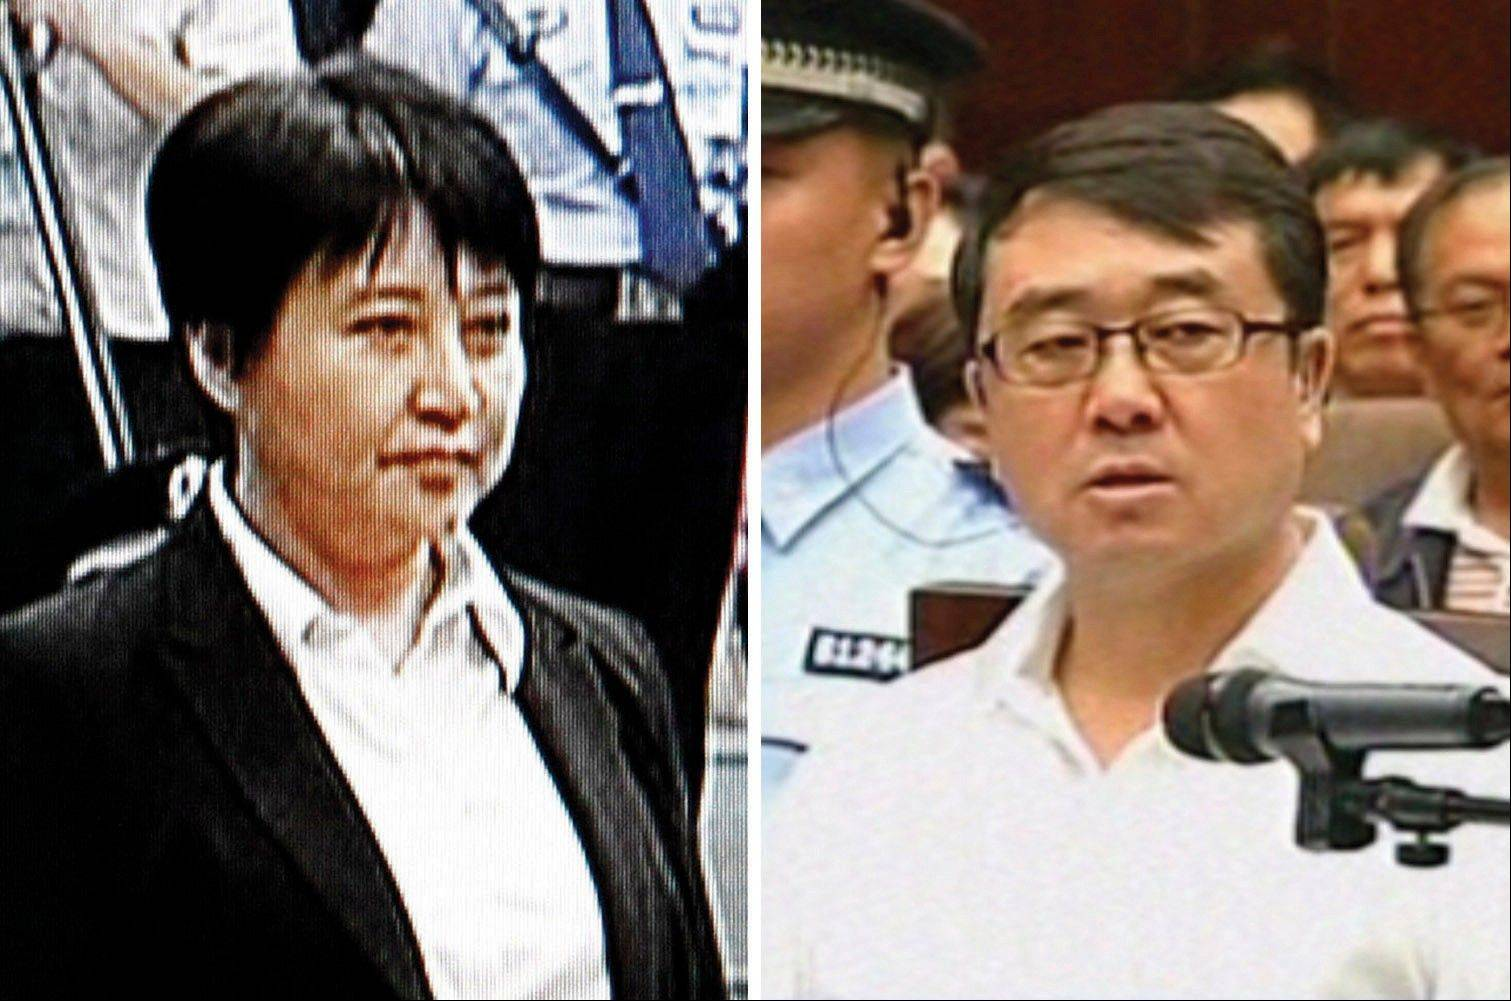 Gu Kailai, left, the wife of disgraced politician Bo Xilai, standing during her trial in the Hefei Intermediate People's Court in Hefei in eastern China's Anhui province and former Chongqing police chief Wang Lijun speaking in his trial at the Chengdu Intermediate People's Court in Chengdu, southwest China's Sichuan province.